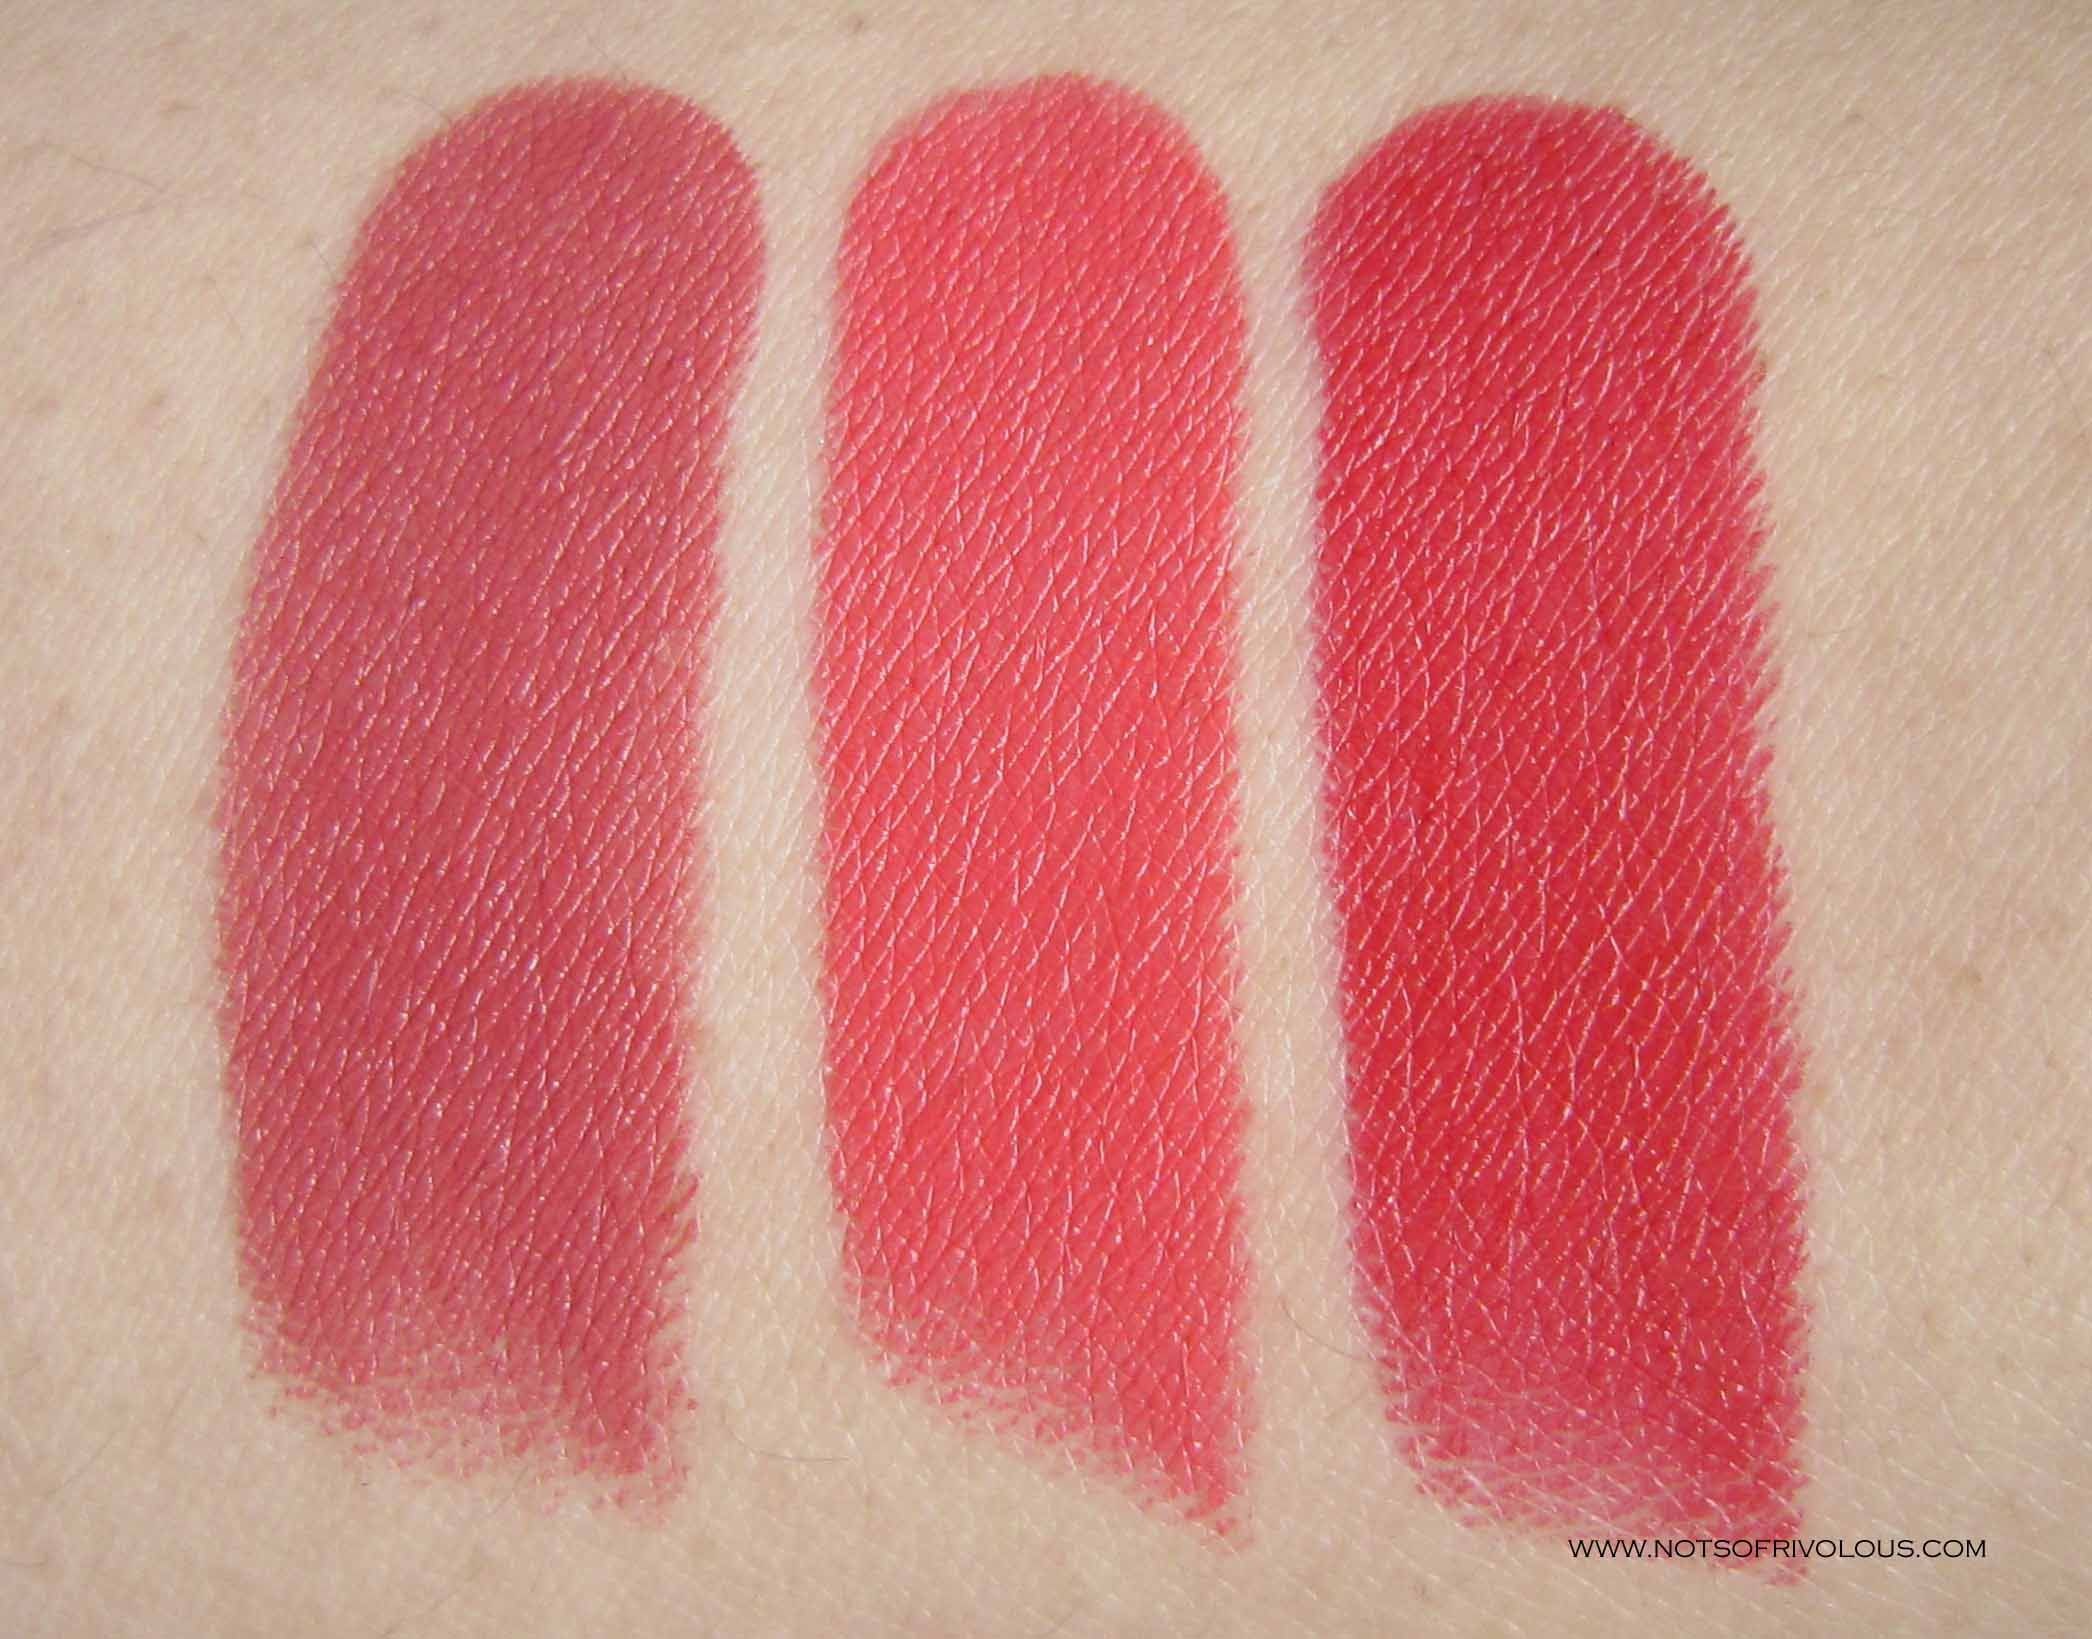 Estée Lauder Pure Color Envy Sculpting Lipstick In Rebellious Rose 420 Defiant Coral 320 Envious 34 Estee Lauder Pure Color Envy Pure Color Envy Swatch